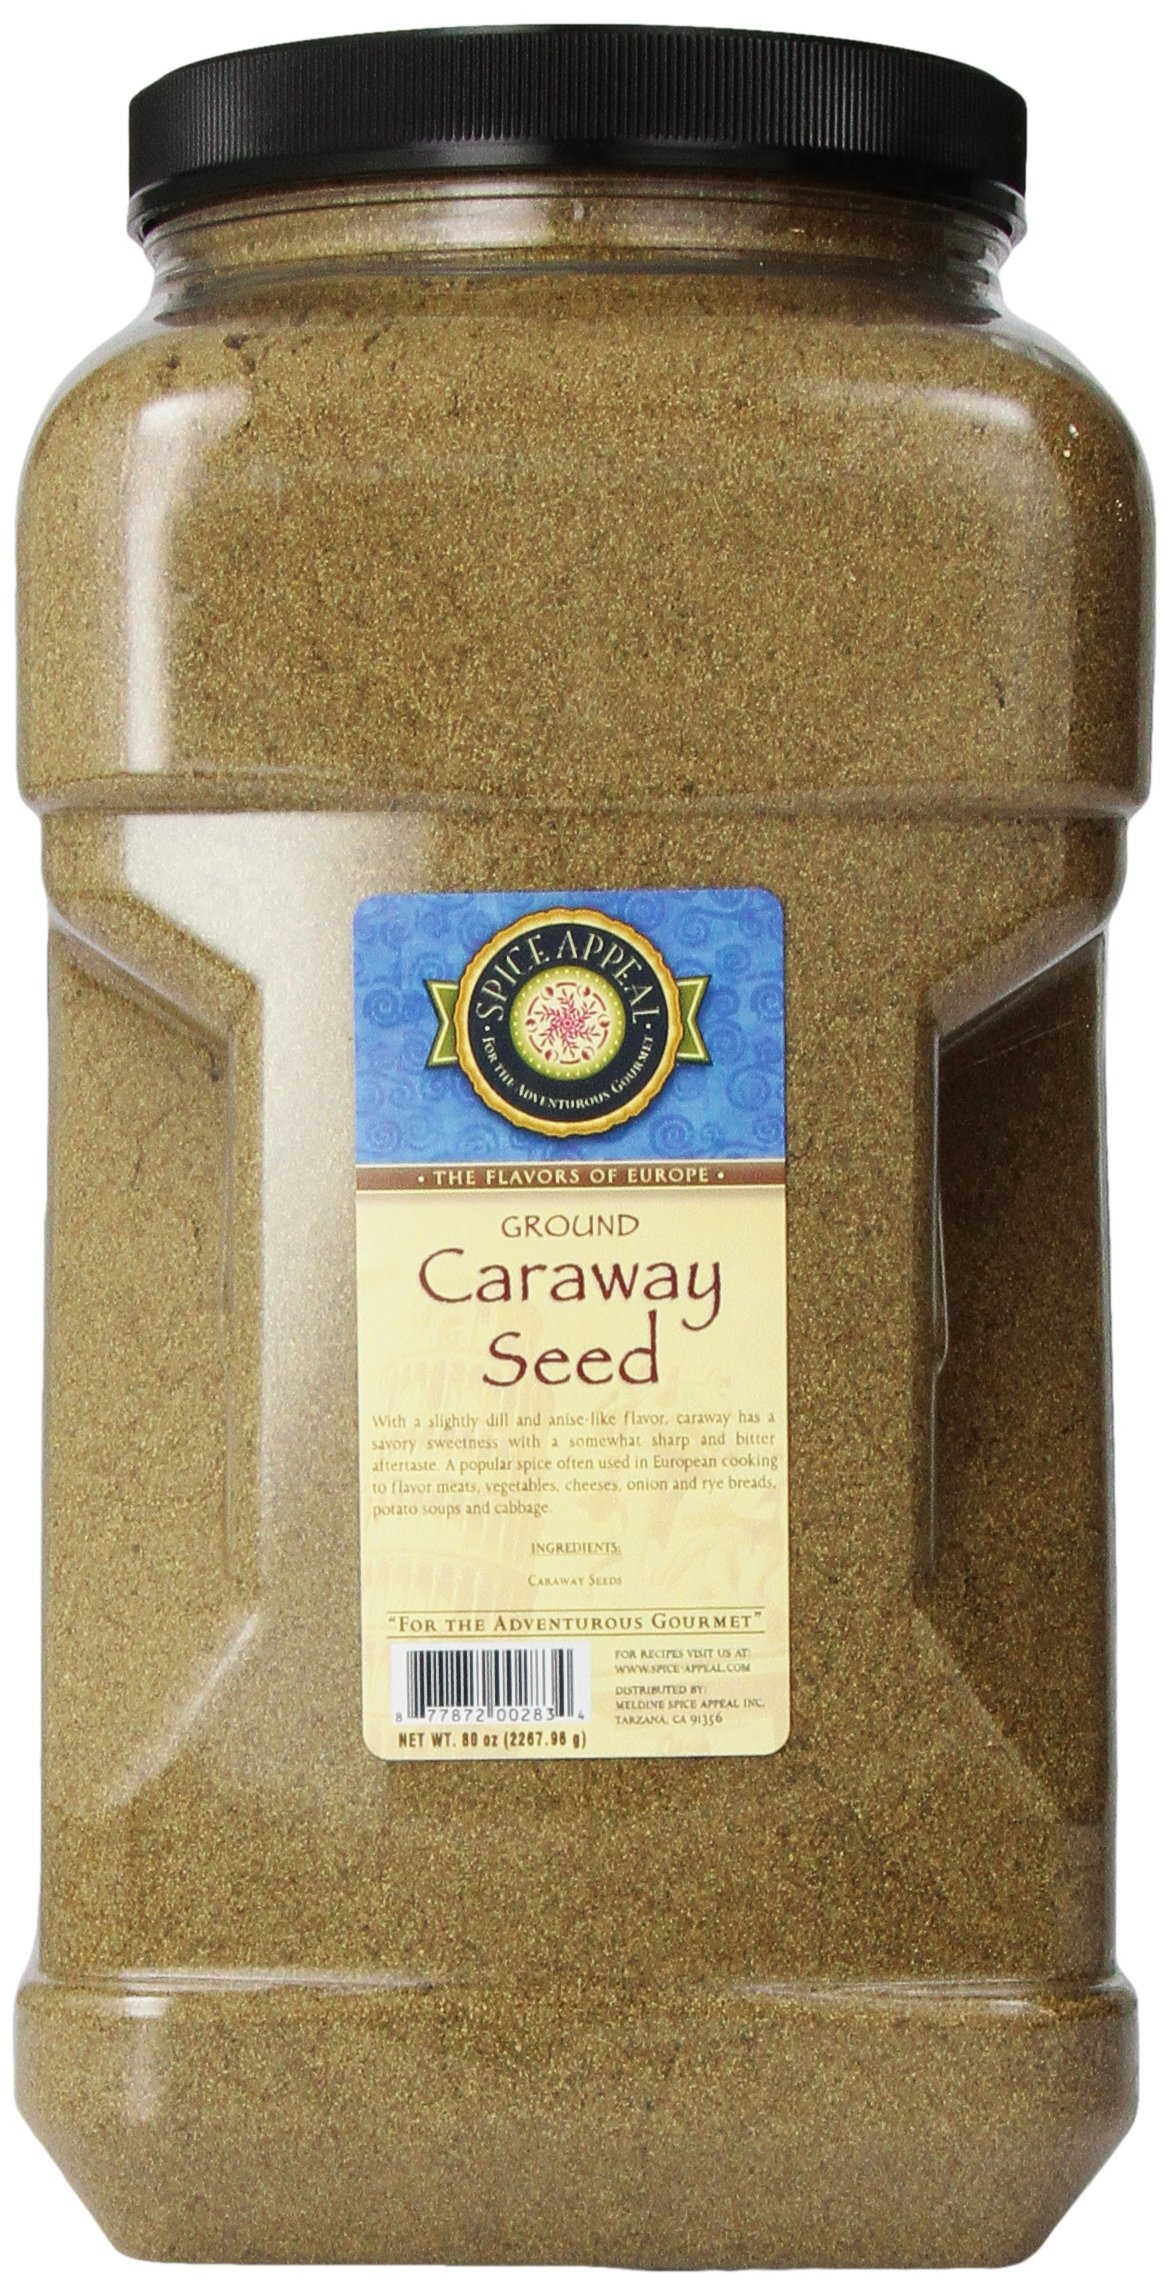 Spice Appeal Caraway Seed Ground, 5 lbs